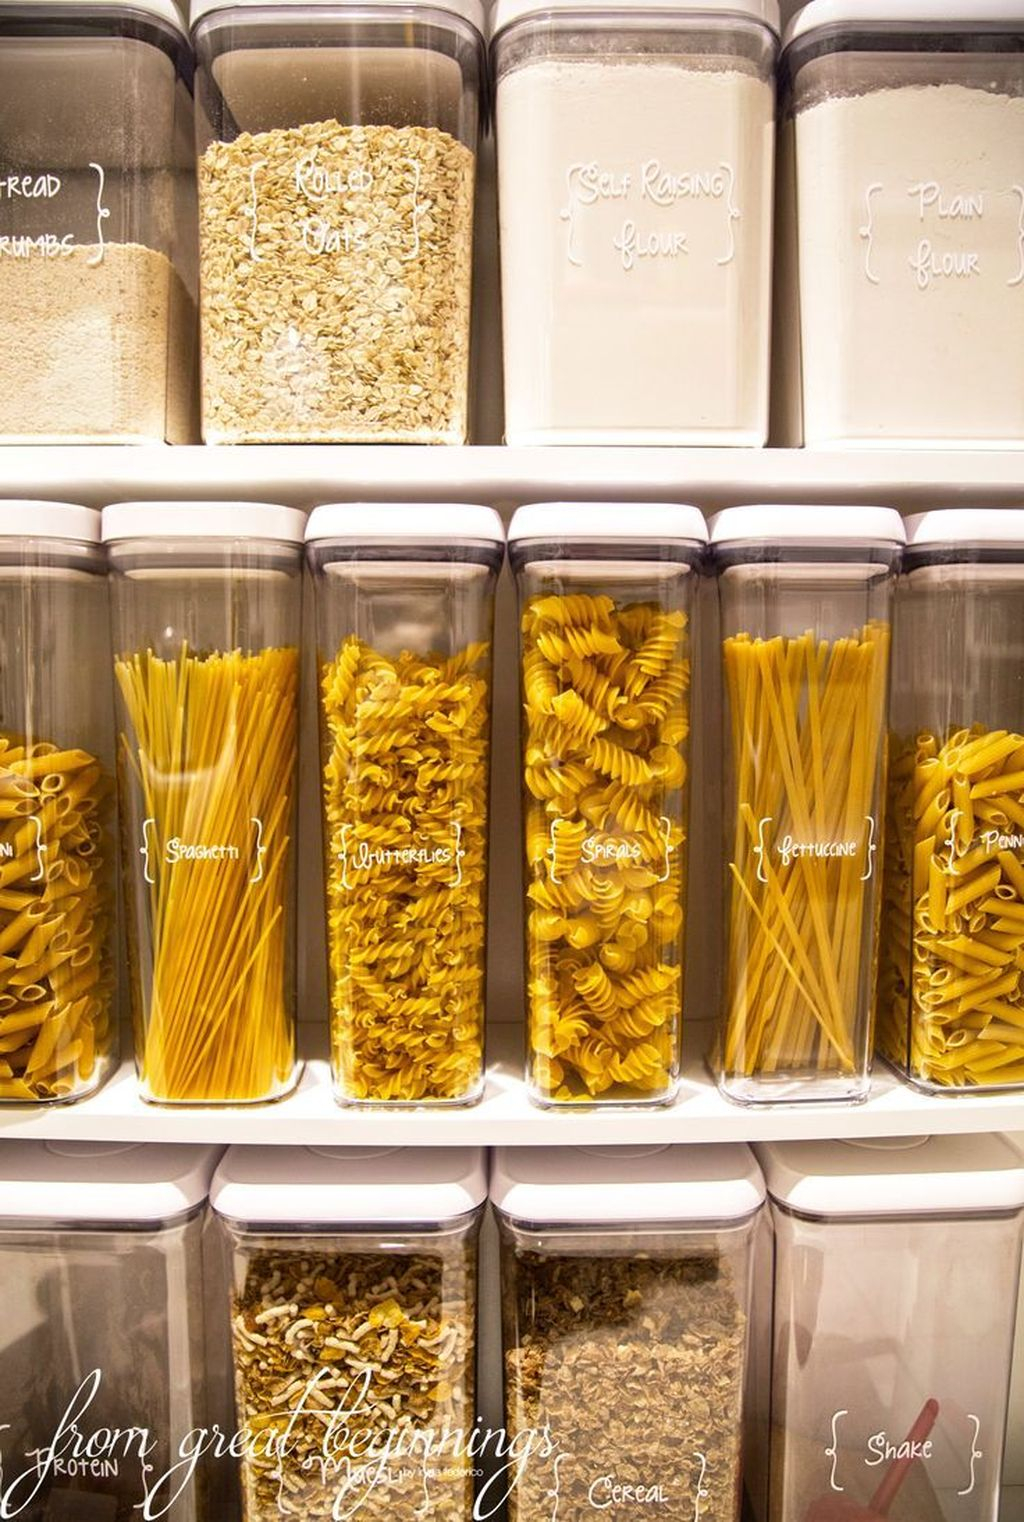 Affordable Kitchen Organization Ideas On A Budget 29